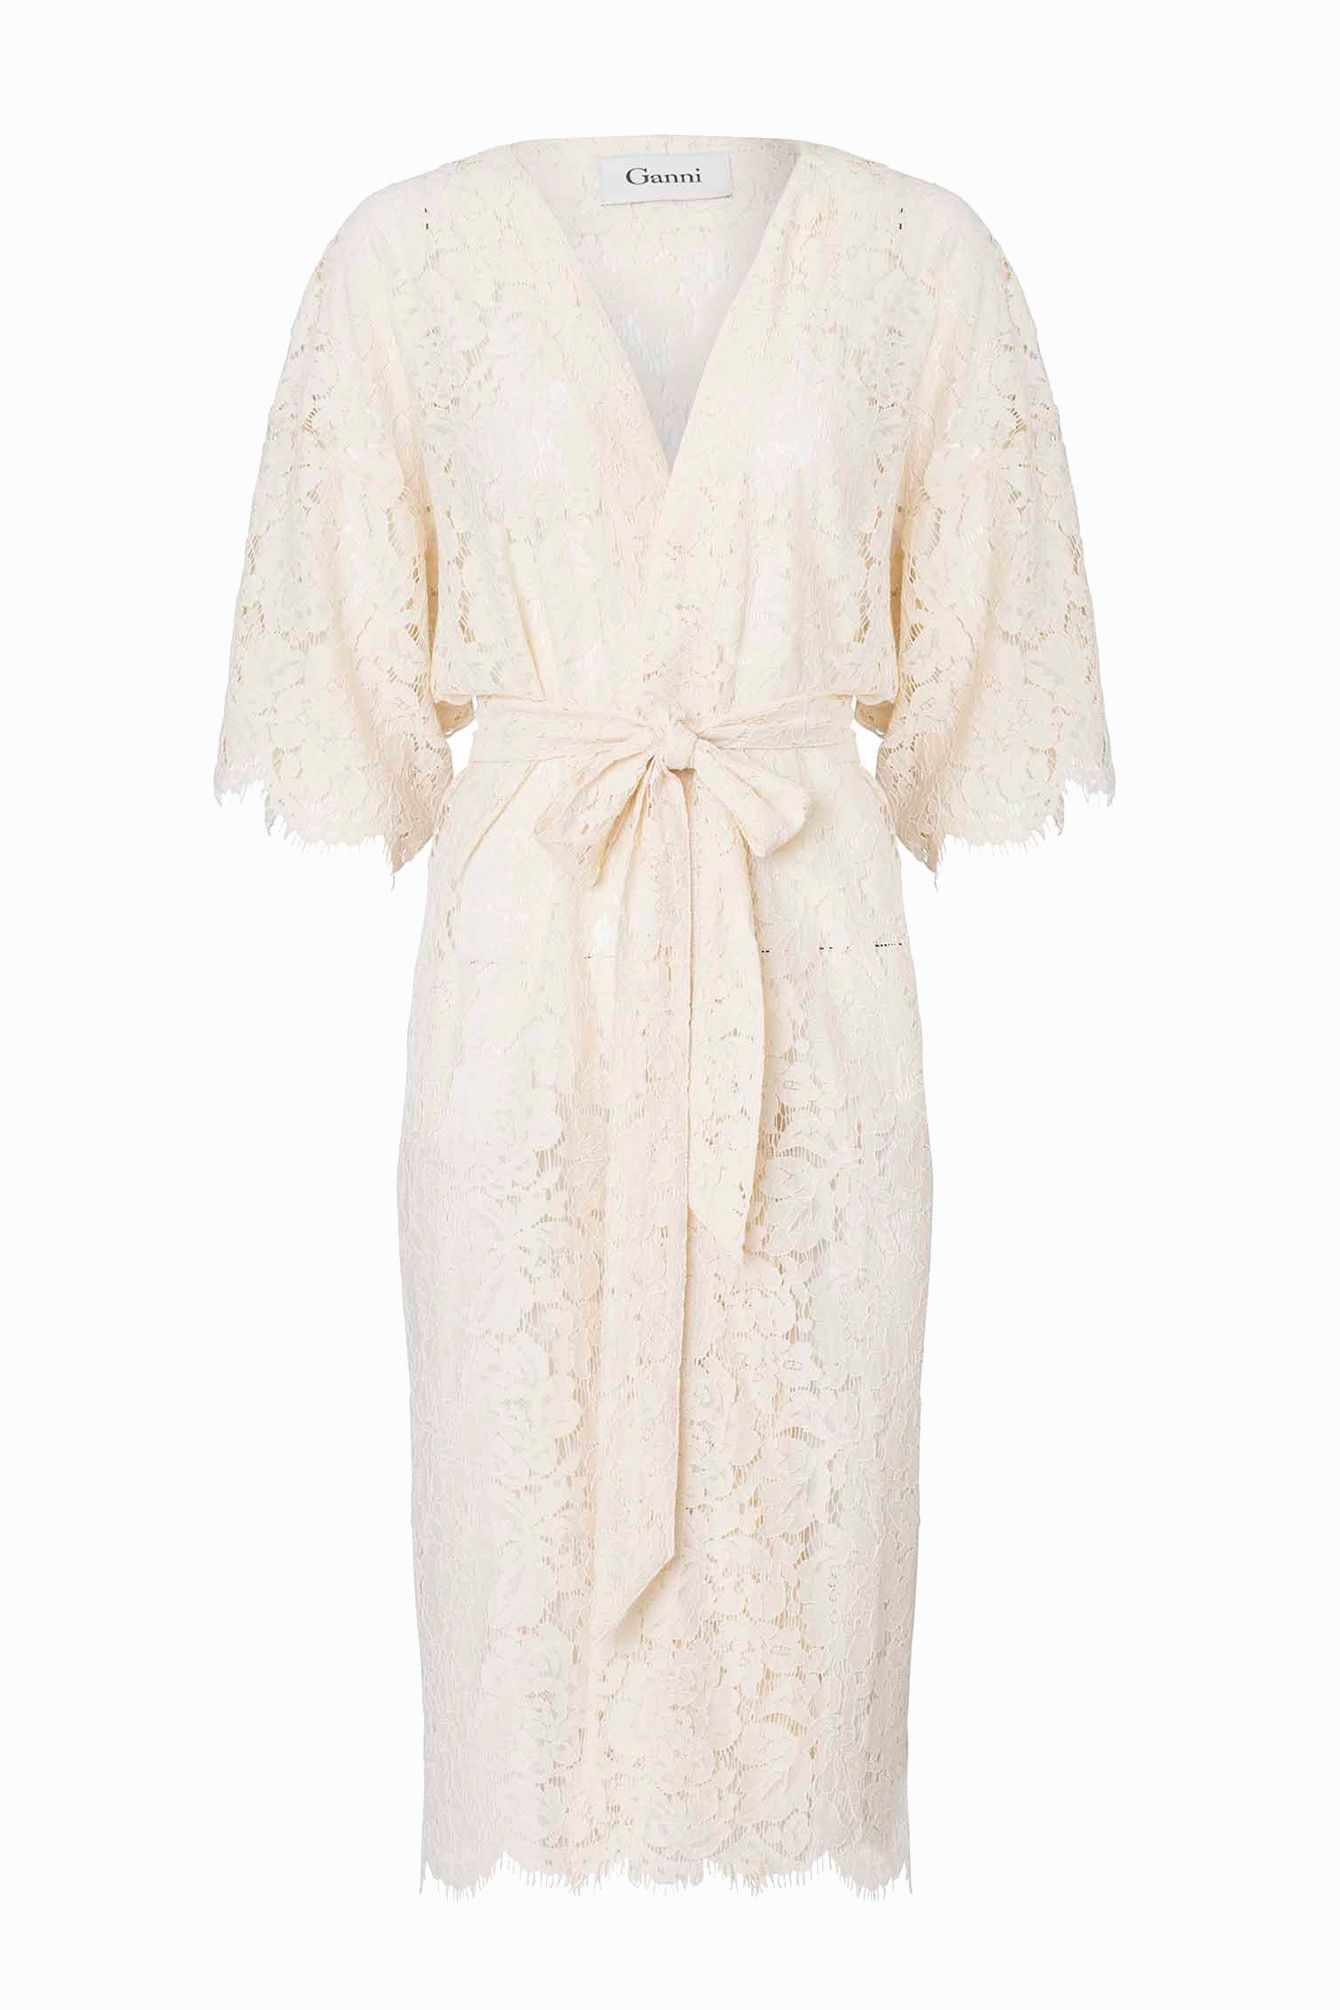 564e9cb77dd Ganni Gothic Lace - Kimono Dress (White Smoke) | Adélie | The ...